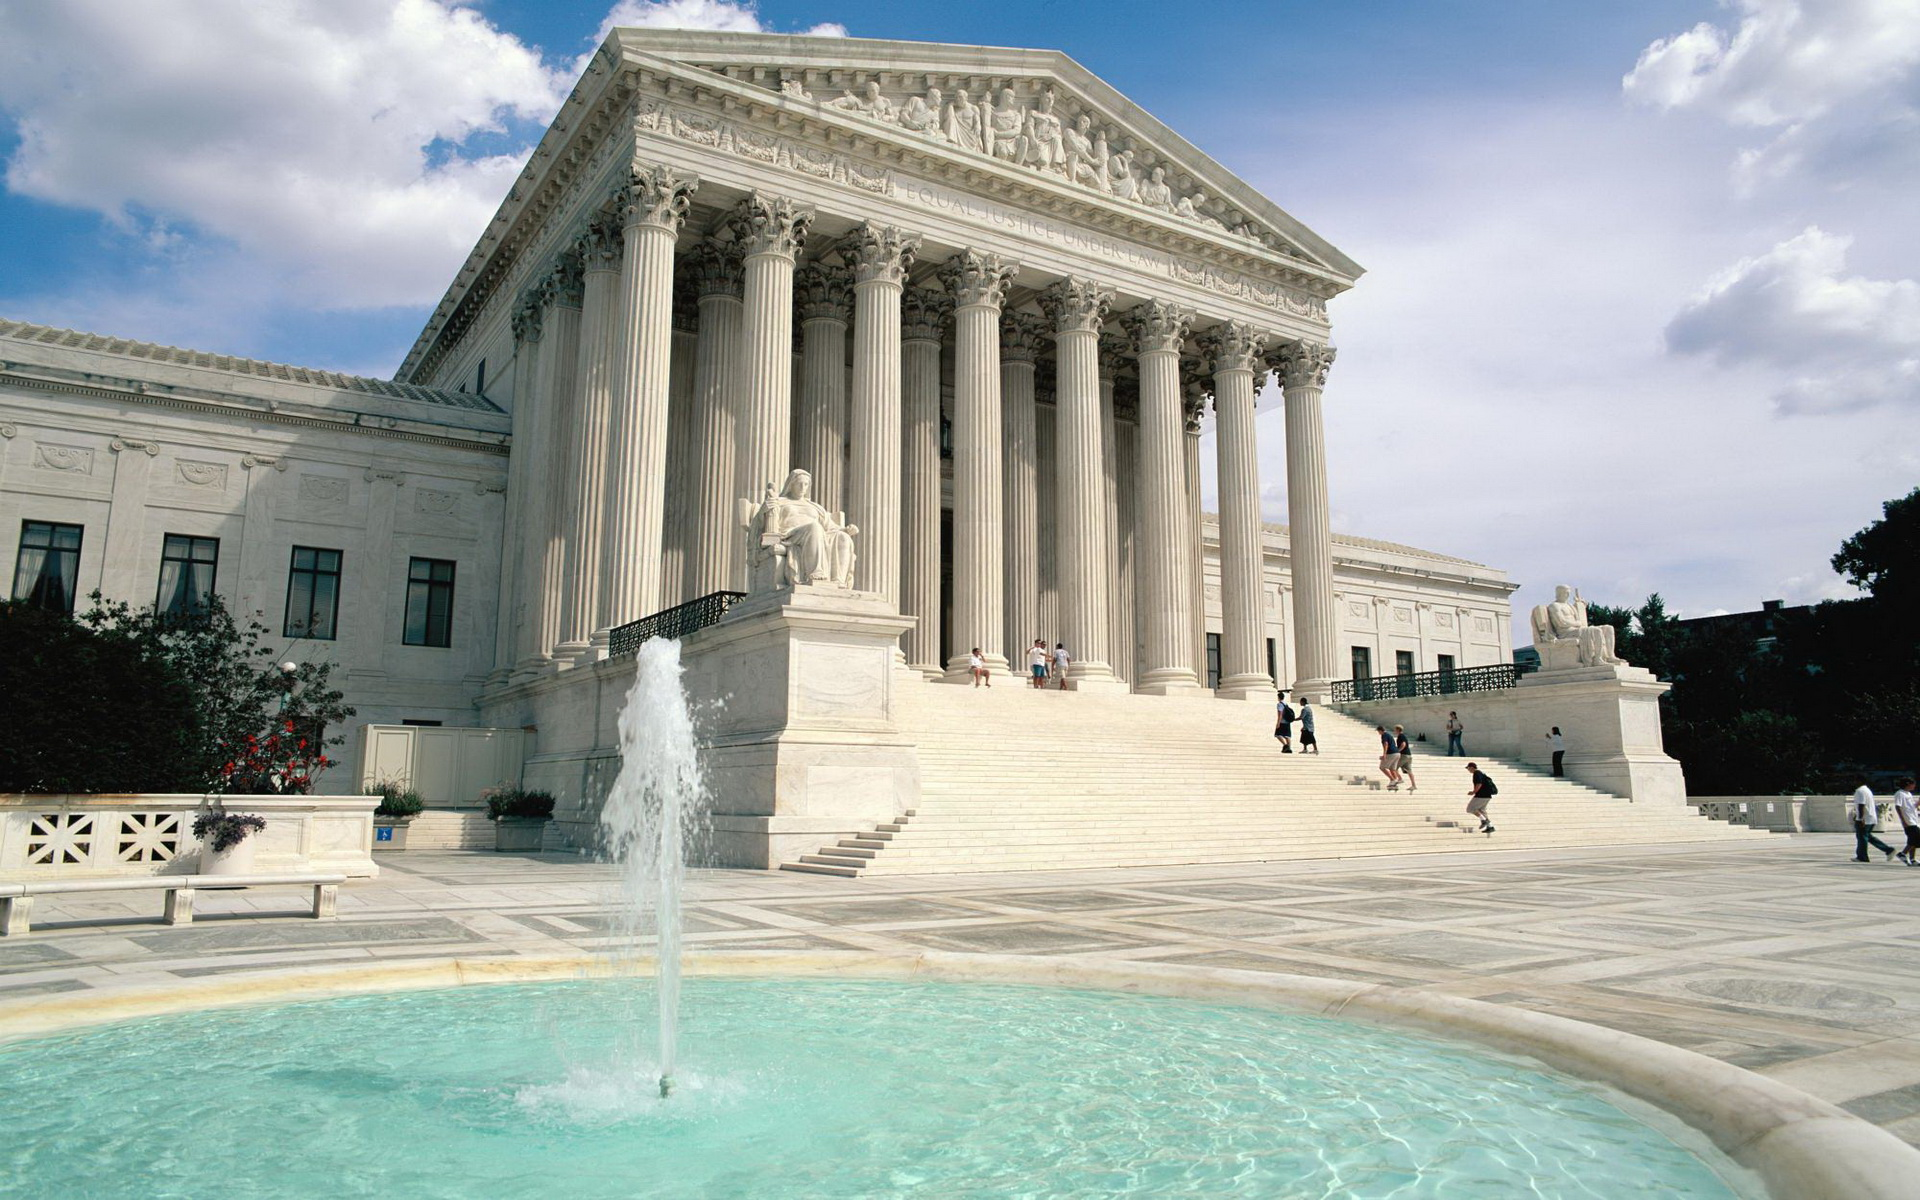 U s supreme court full hd wallpaper and background image - Court wallpaper ...